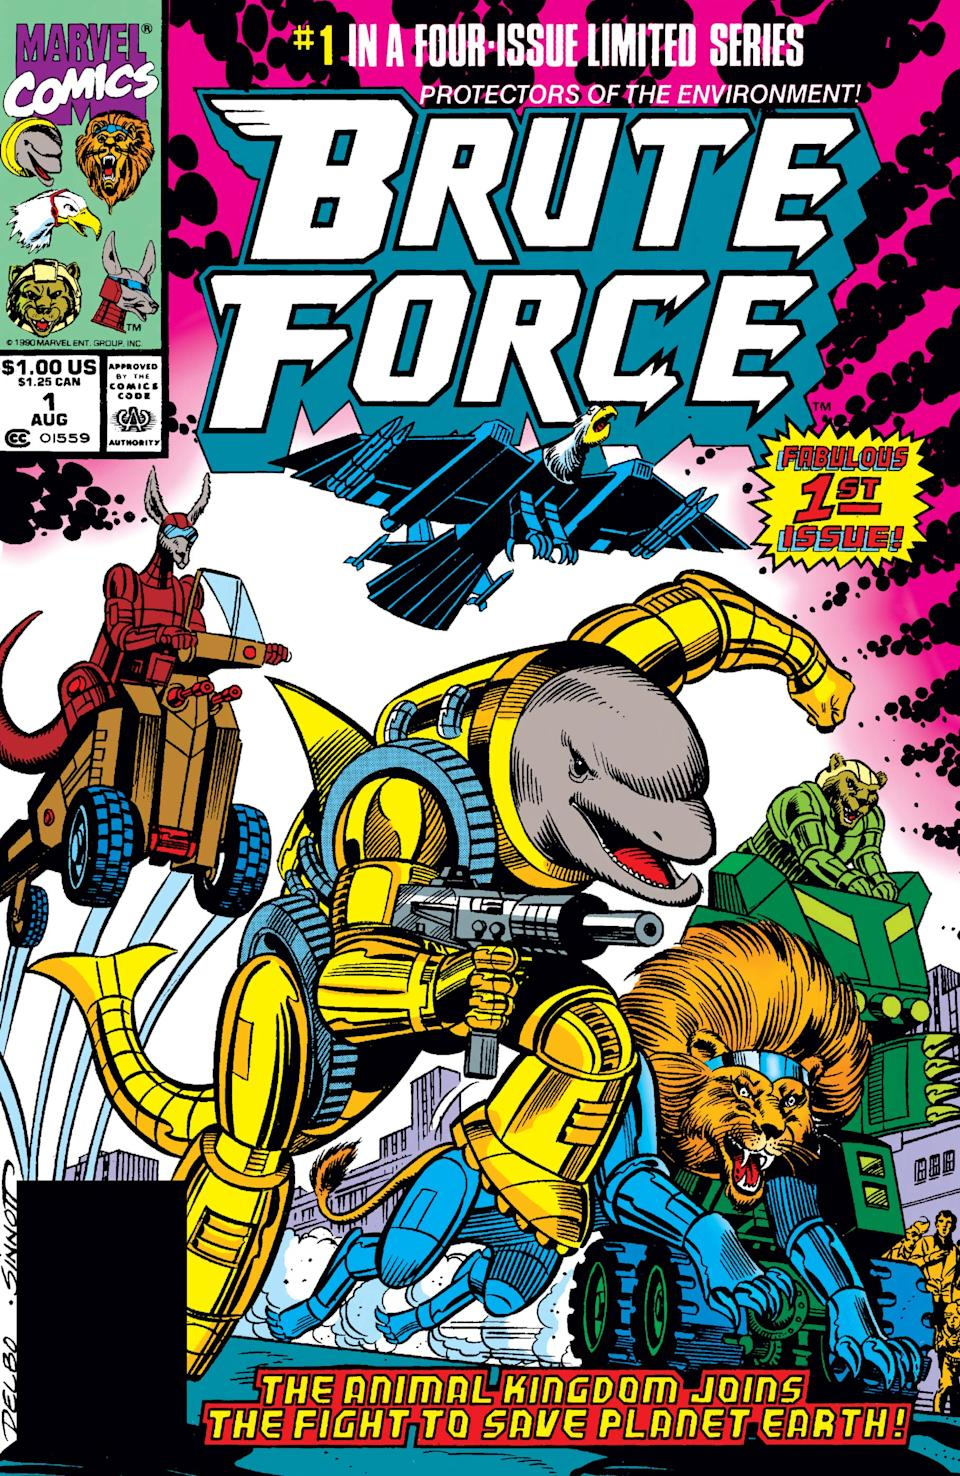 The cover of 'Brute Force' #1 (Photo: Marvel Comics)